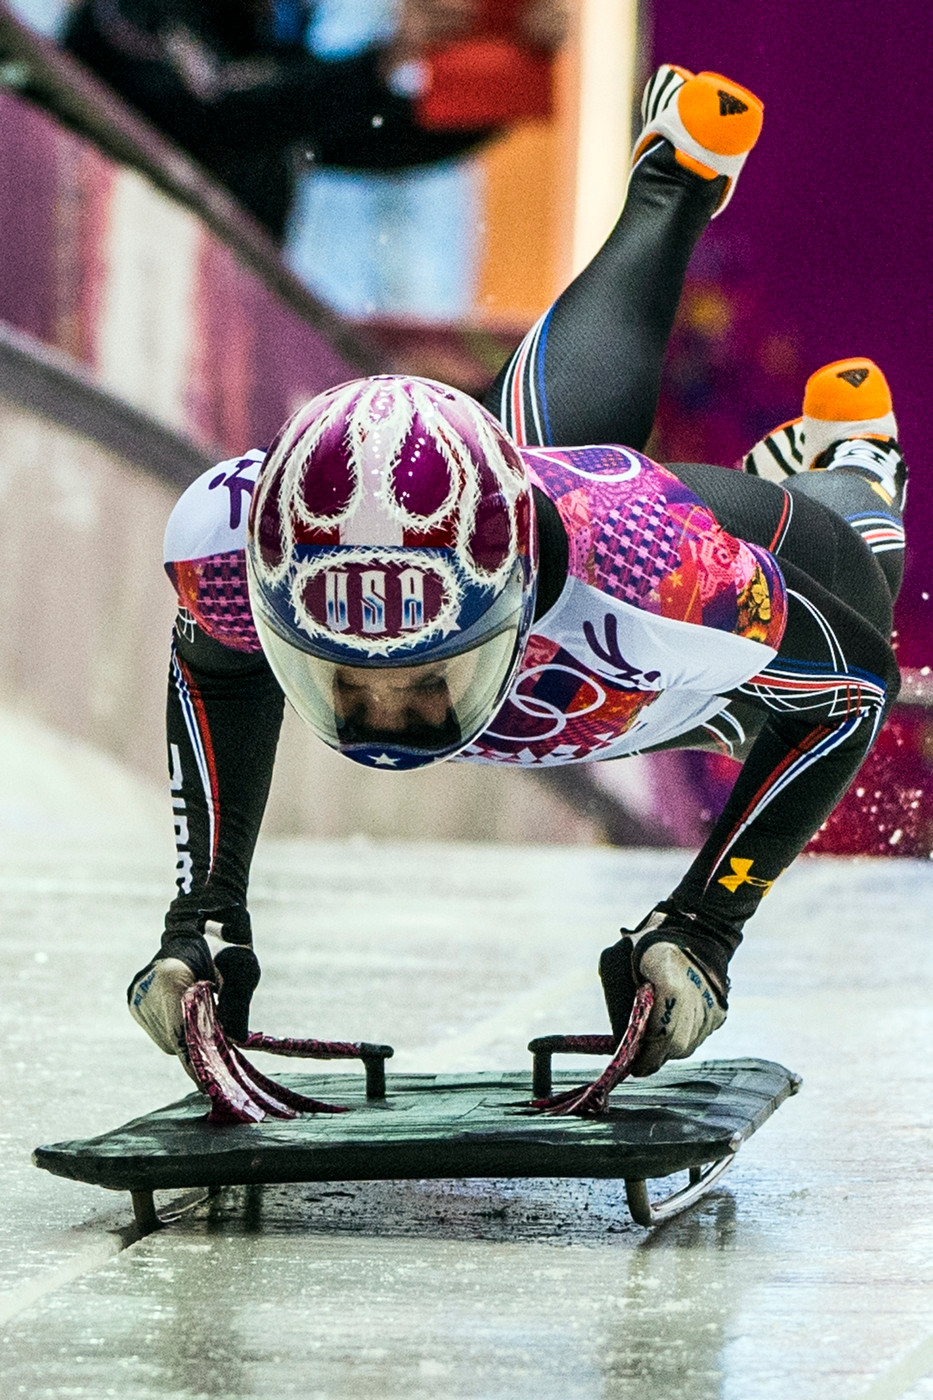 Noelle loading on her sled at the Sochi Olympics